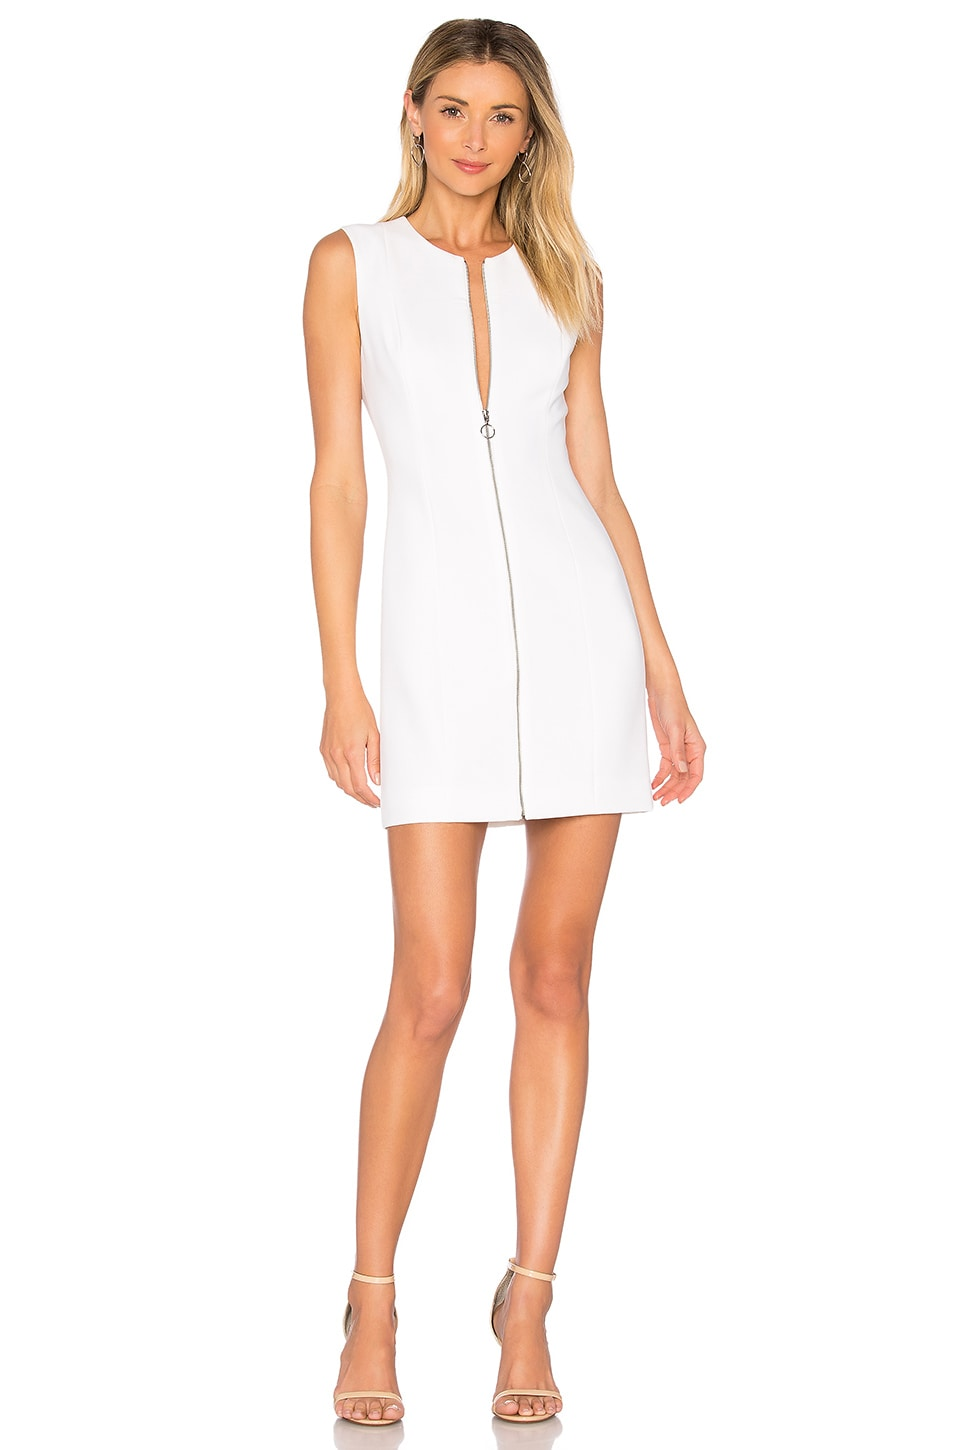 Elizabeth and James Susannah Bodycon Mini Dress in White